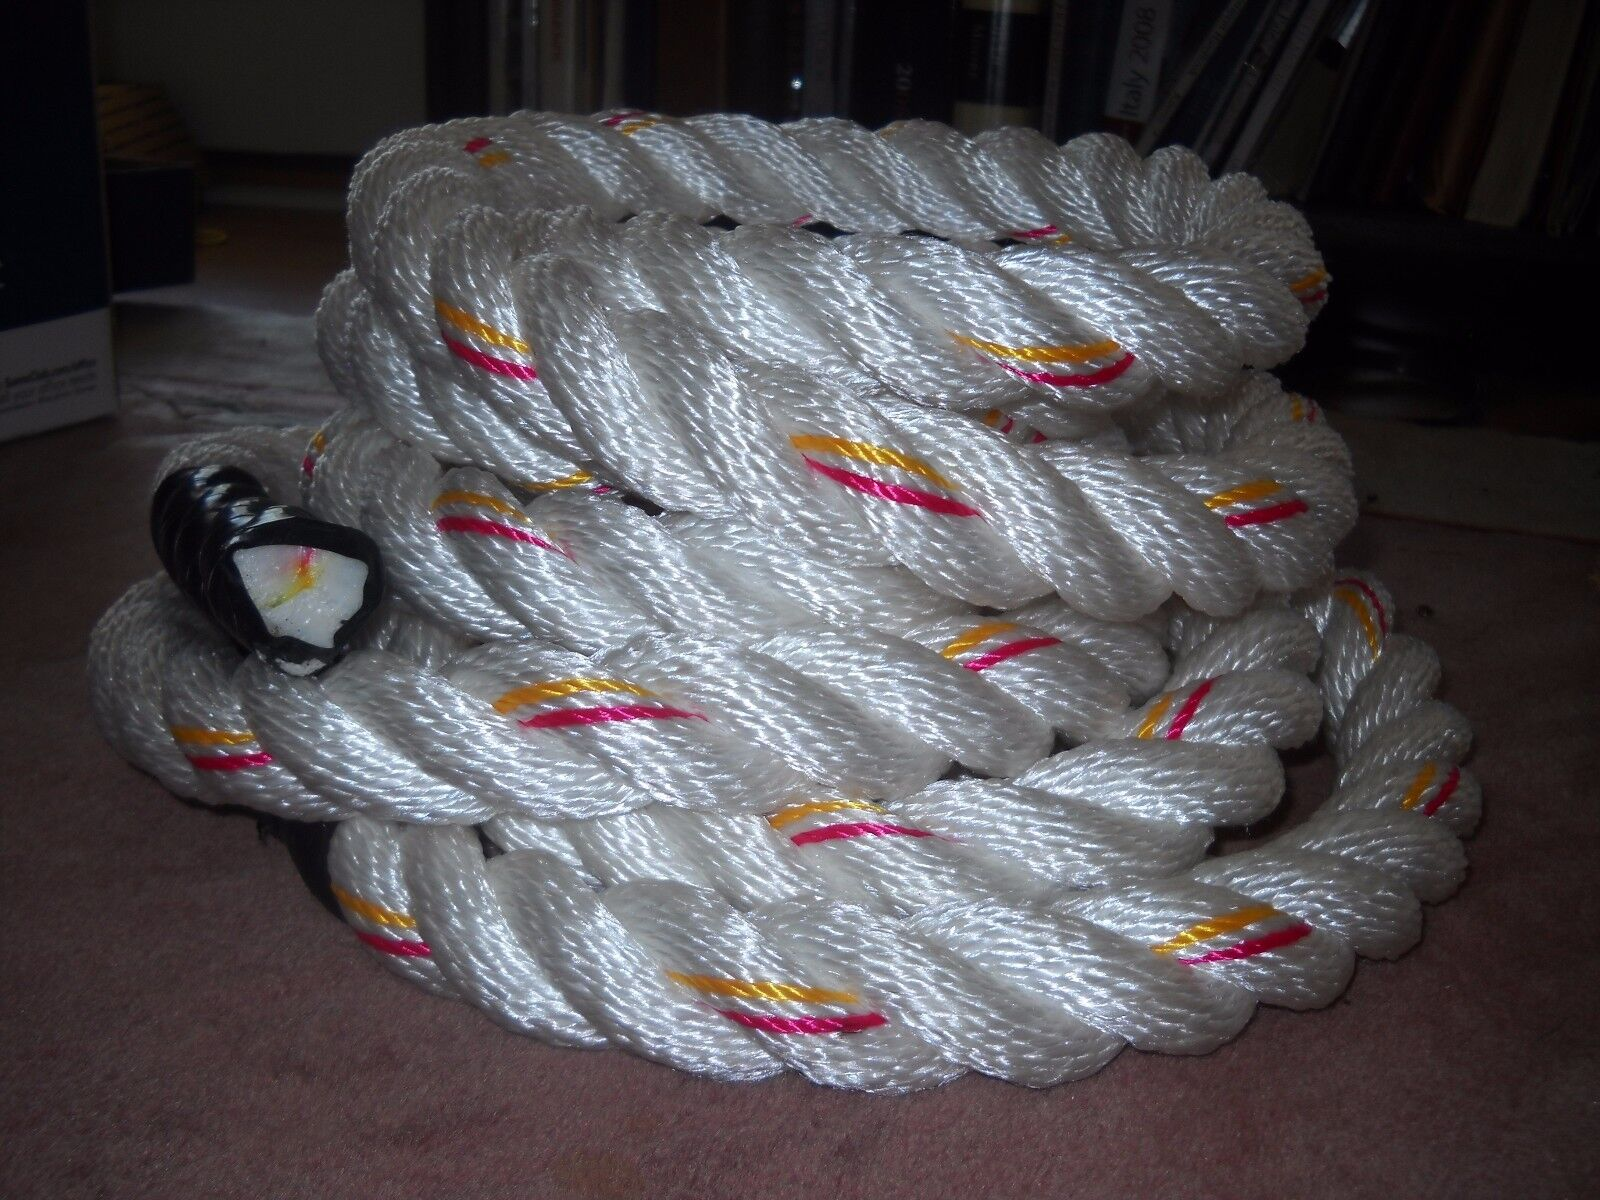 WORKOUT Rope 2 x 36 Polydacron GYM Exercise